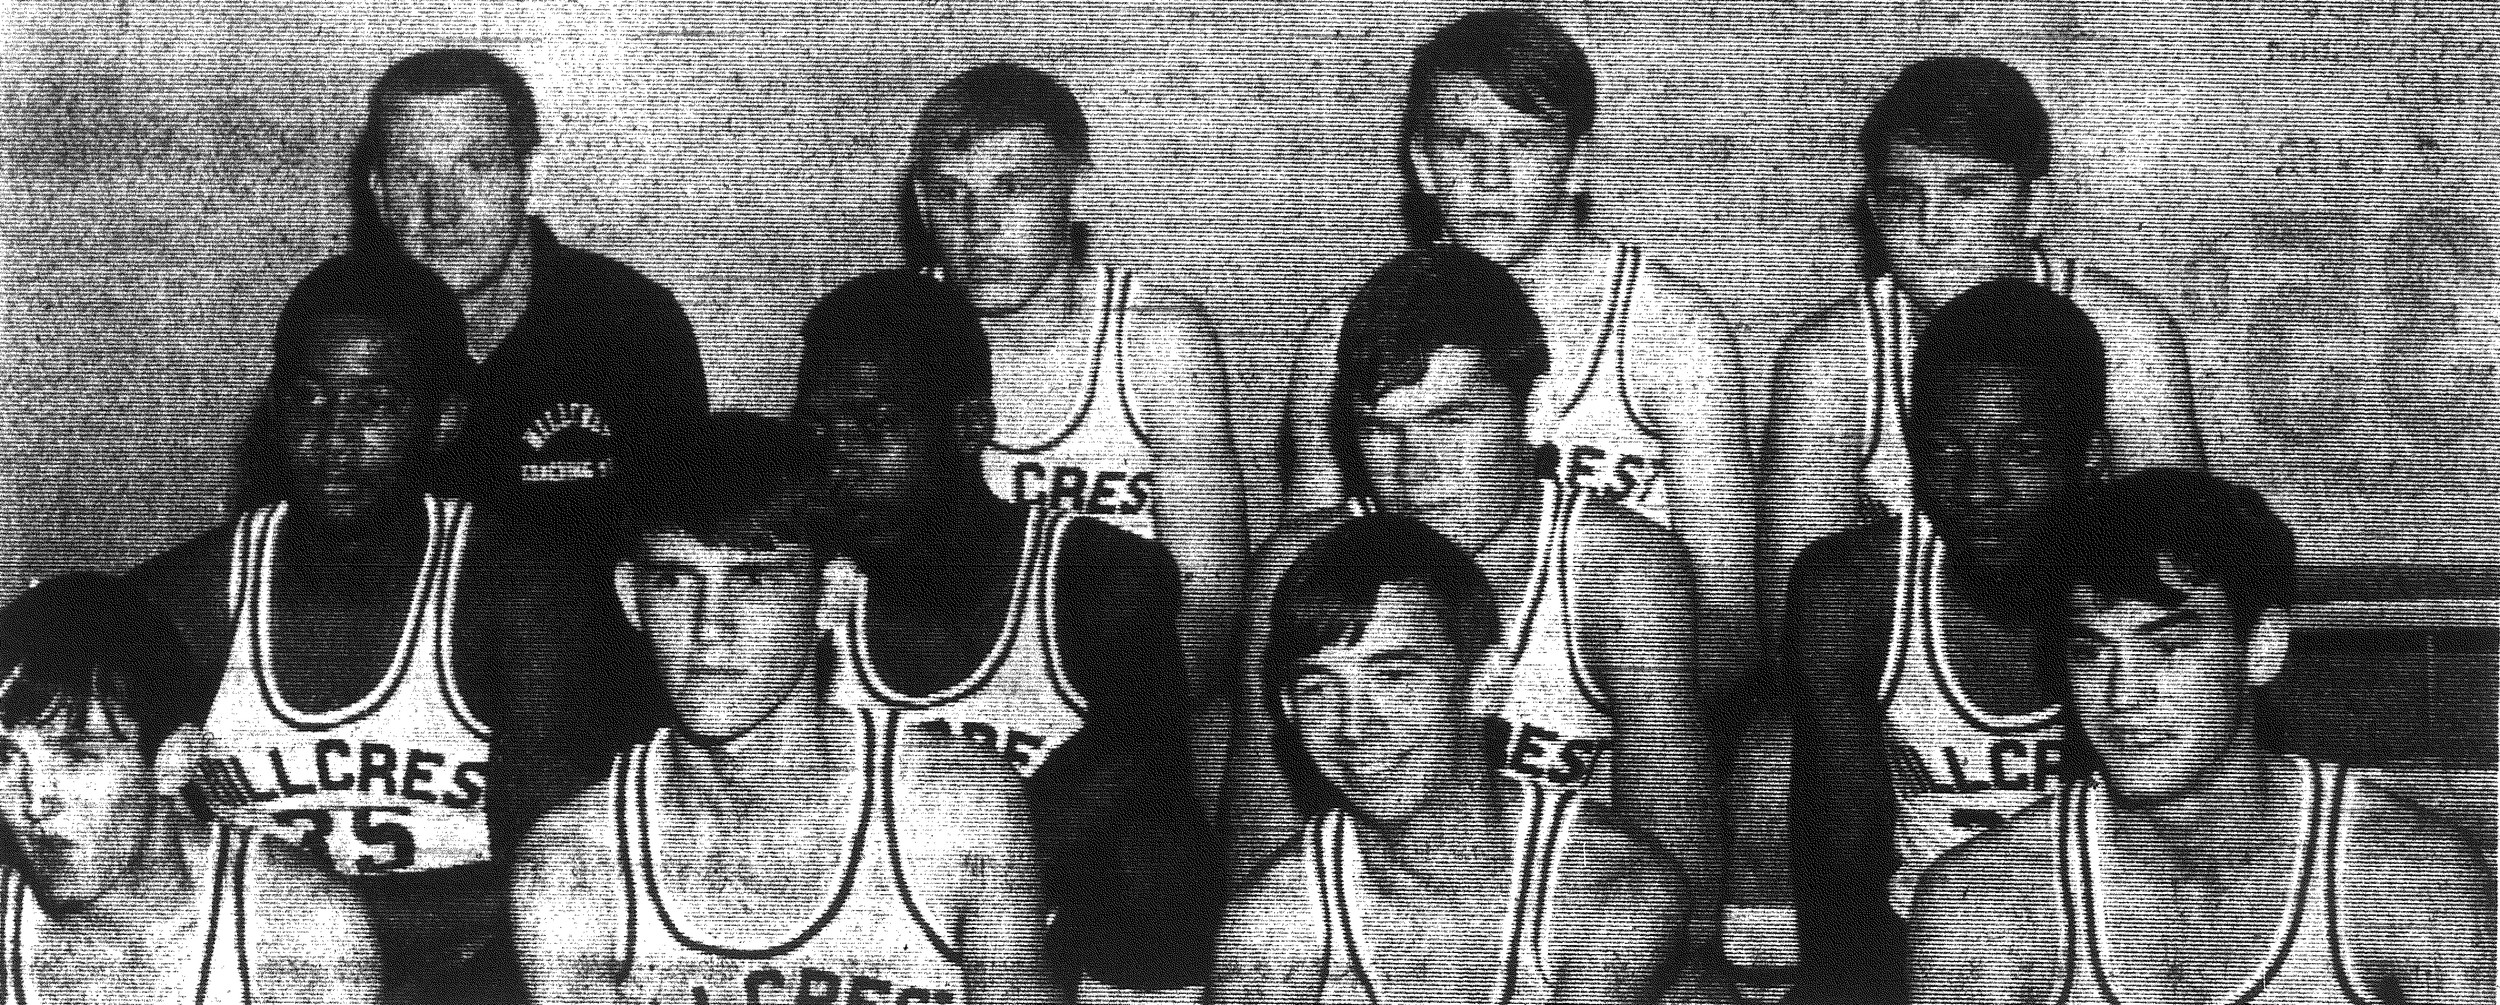 From 1967 - In pursuit of a second straight Sumter Holiday Invitational Championship are Hillcrest's Wildcats, who defeated Sumter 69-48 in the title showdown last year. Coached by Richard Bradham, Hillcrest, 4-1, faces Lower Richland in tonight's first round battle. Winner of that one will tackle the Sumter-Furman winner in a 3:30 tilt tomorrow afternoon.